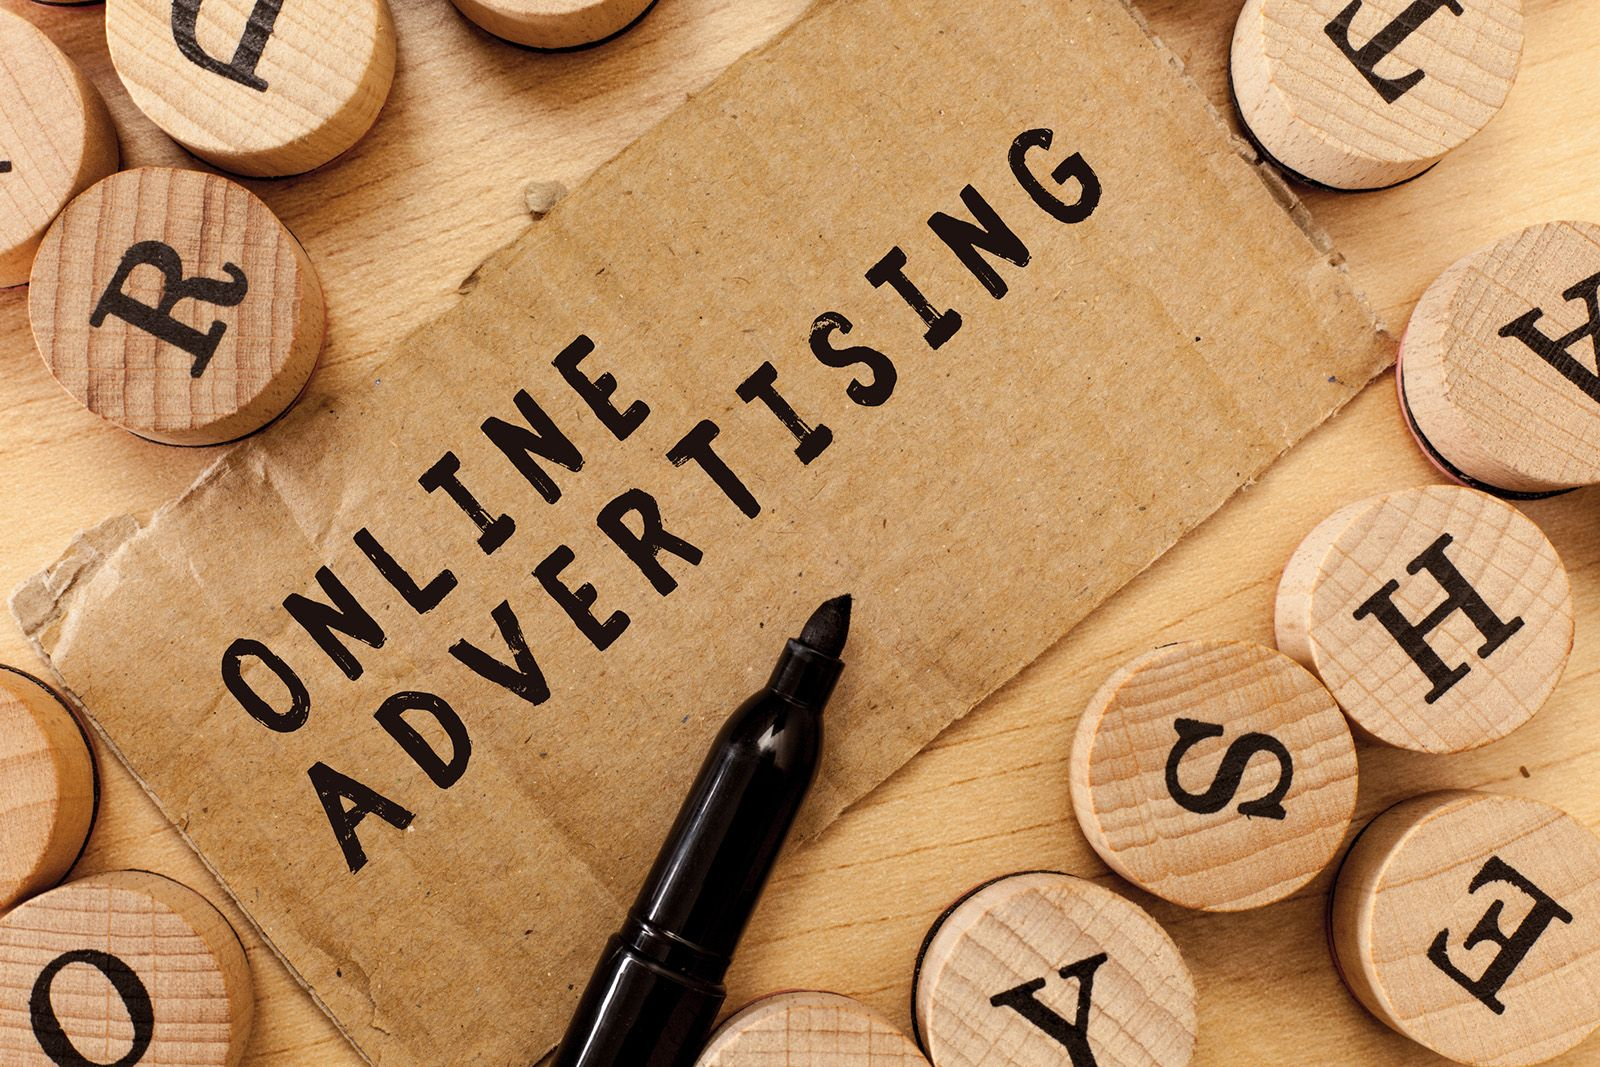 Consumers tuning out digital ads